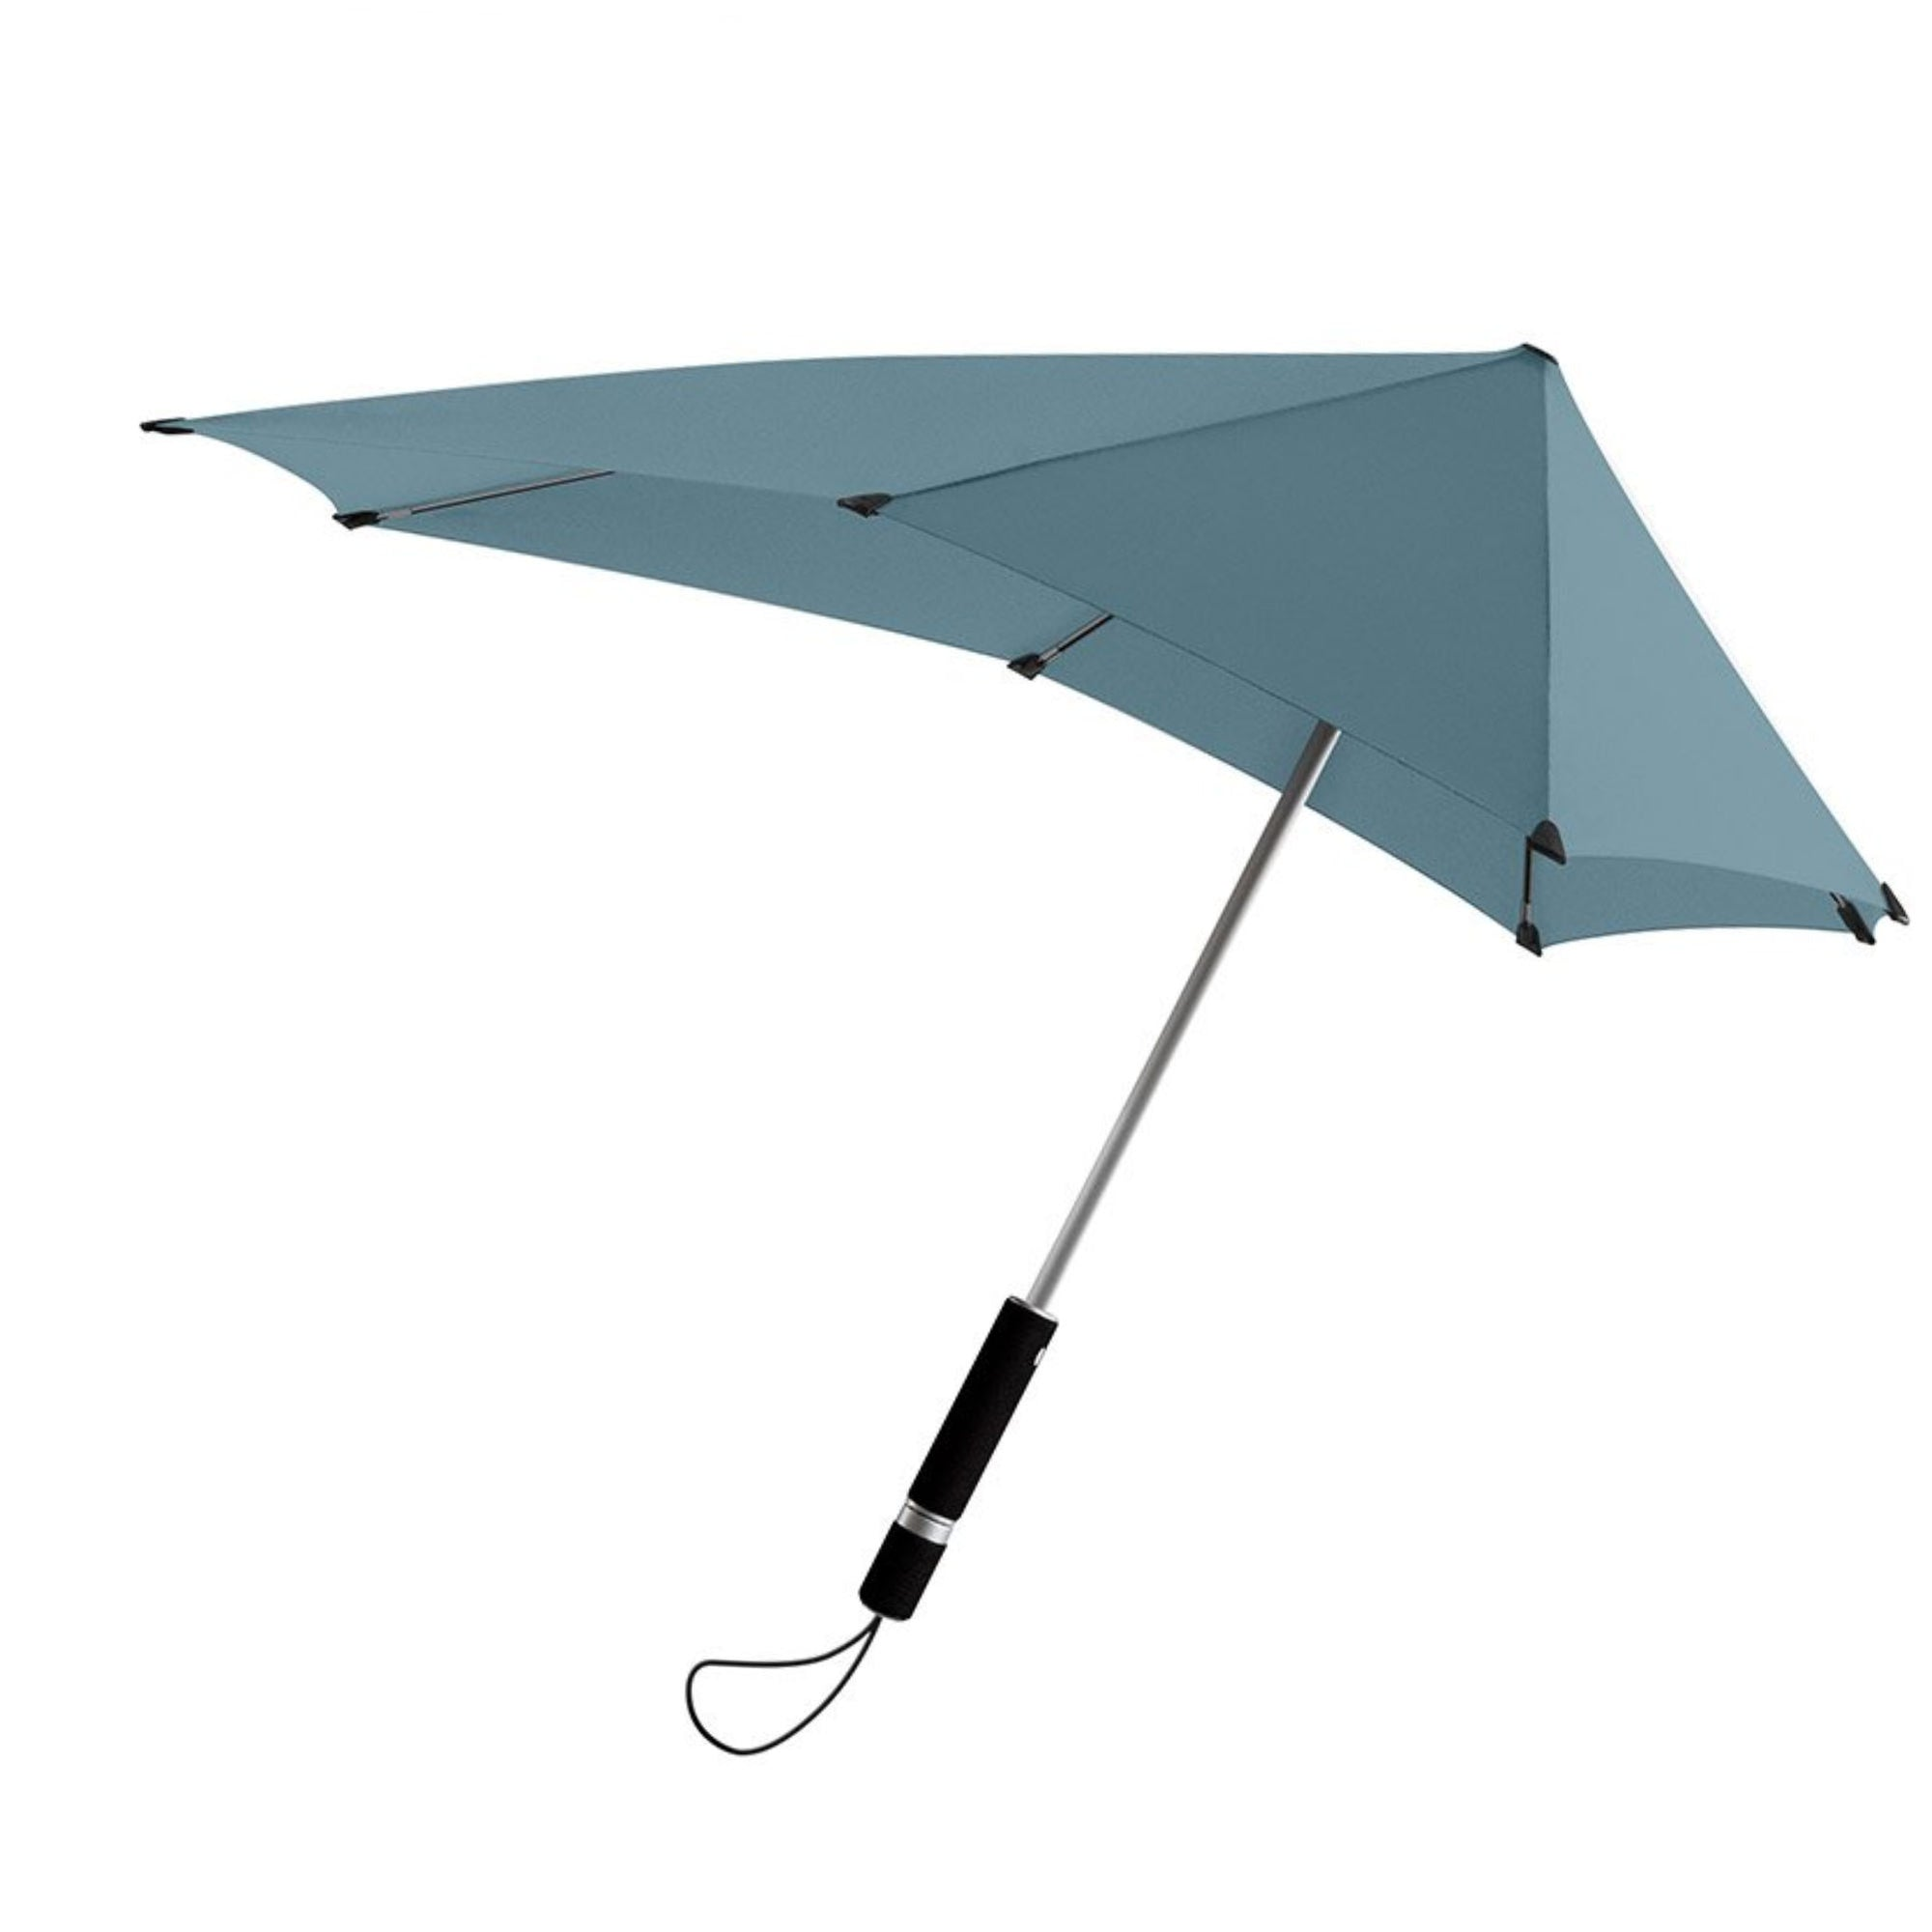 Senz° Original storm umbrella, stoney blue